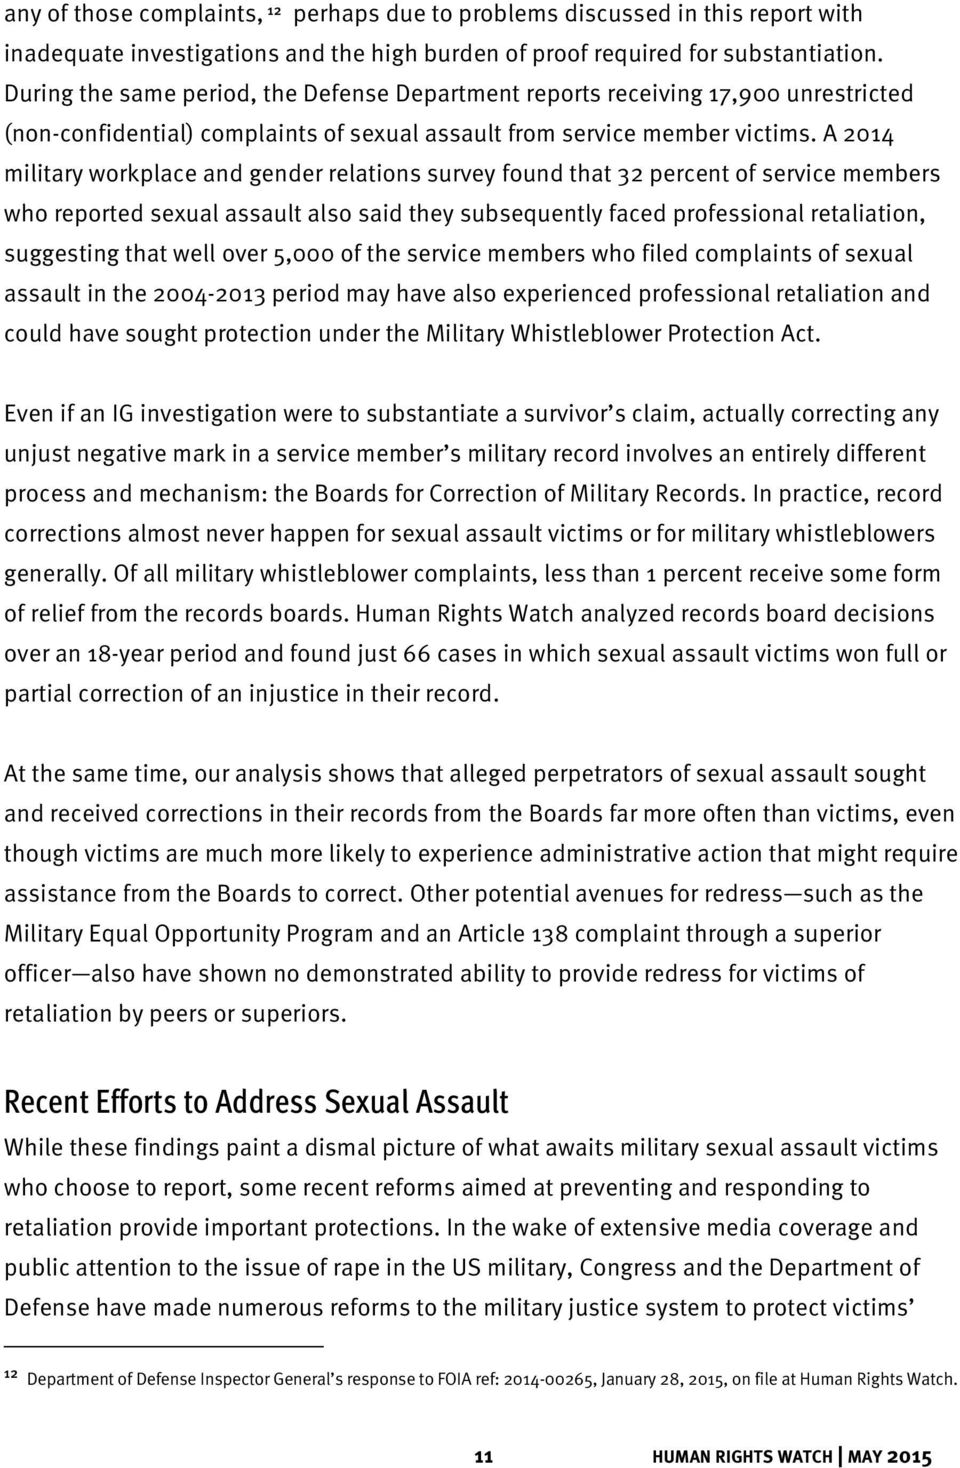 A 2014 military workplace and gender relations survey found that 32 percent of service members who reported sexual assault also said they subsequently faced professional retaliation, suggesting that